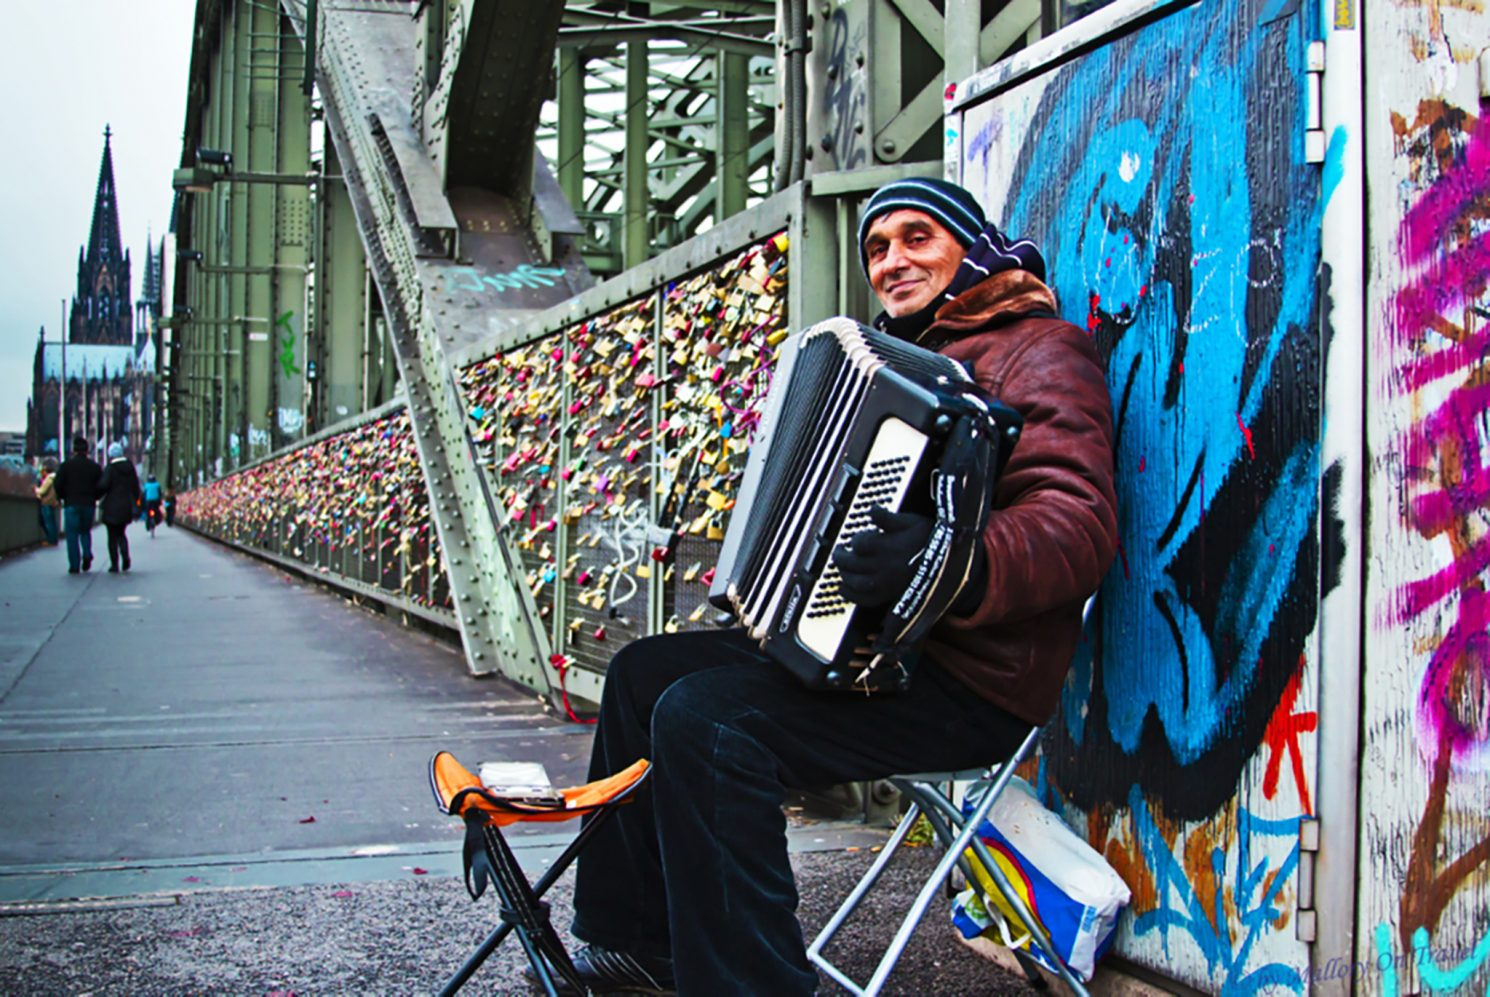 Busker on the Cologne railway Bridge of locks over the Rhine, Germany on Mallory on Travel, adventure, adventure travel, photography iain_mallory_06720